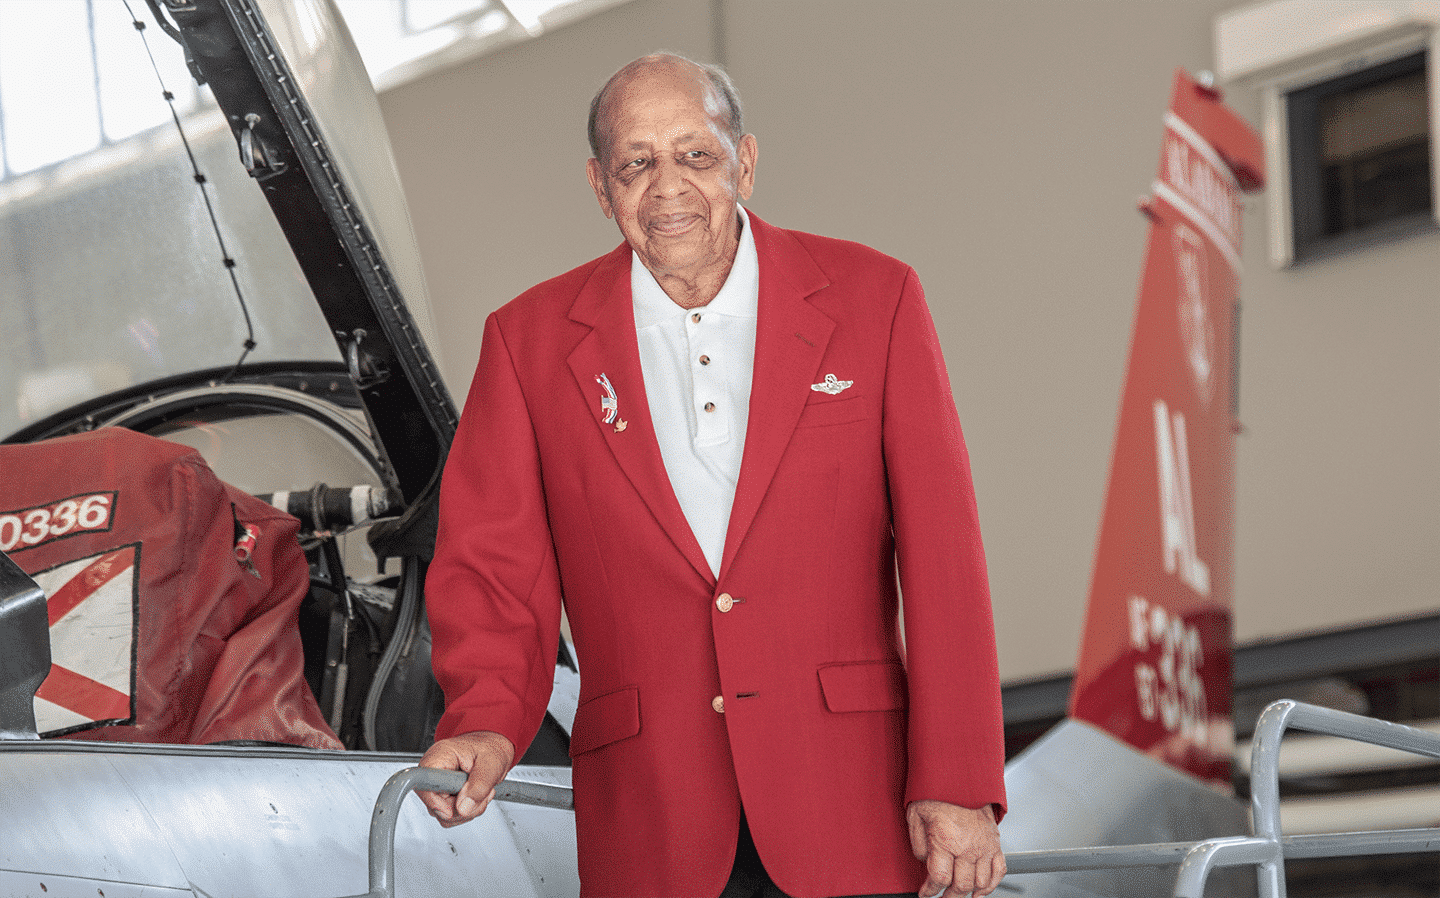 Harold Brown, one of the last Tuskegee Airmen, recalls battling for victory — and equality